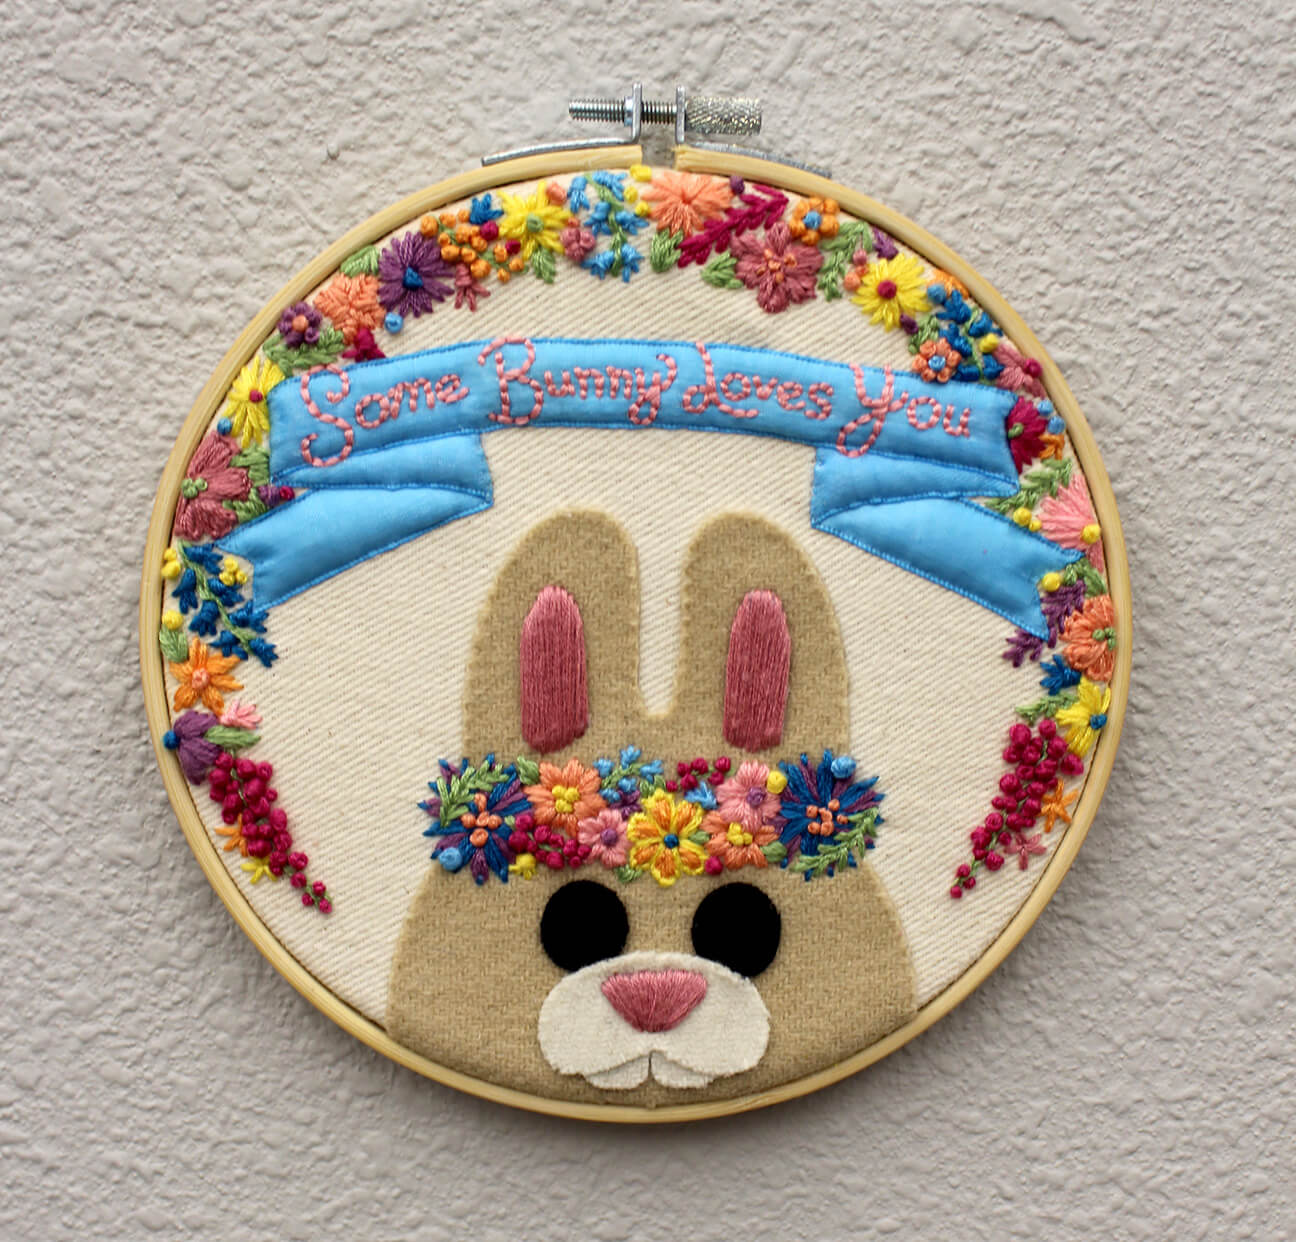 Embroidered bunny